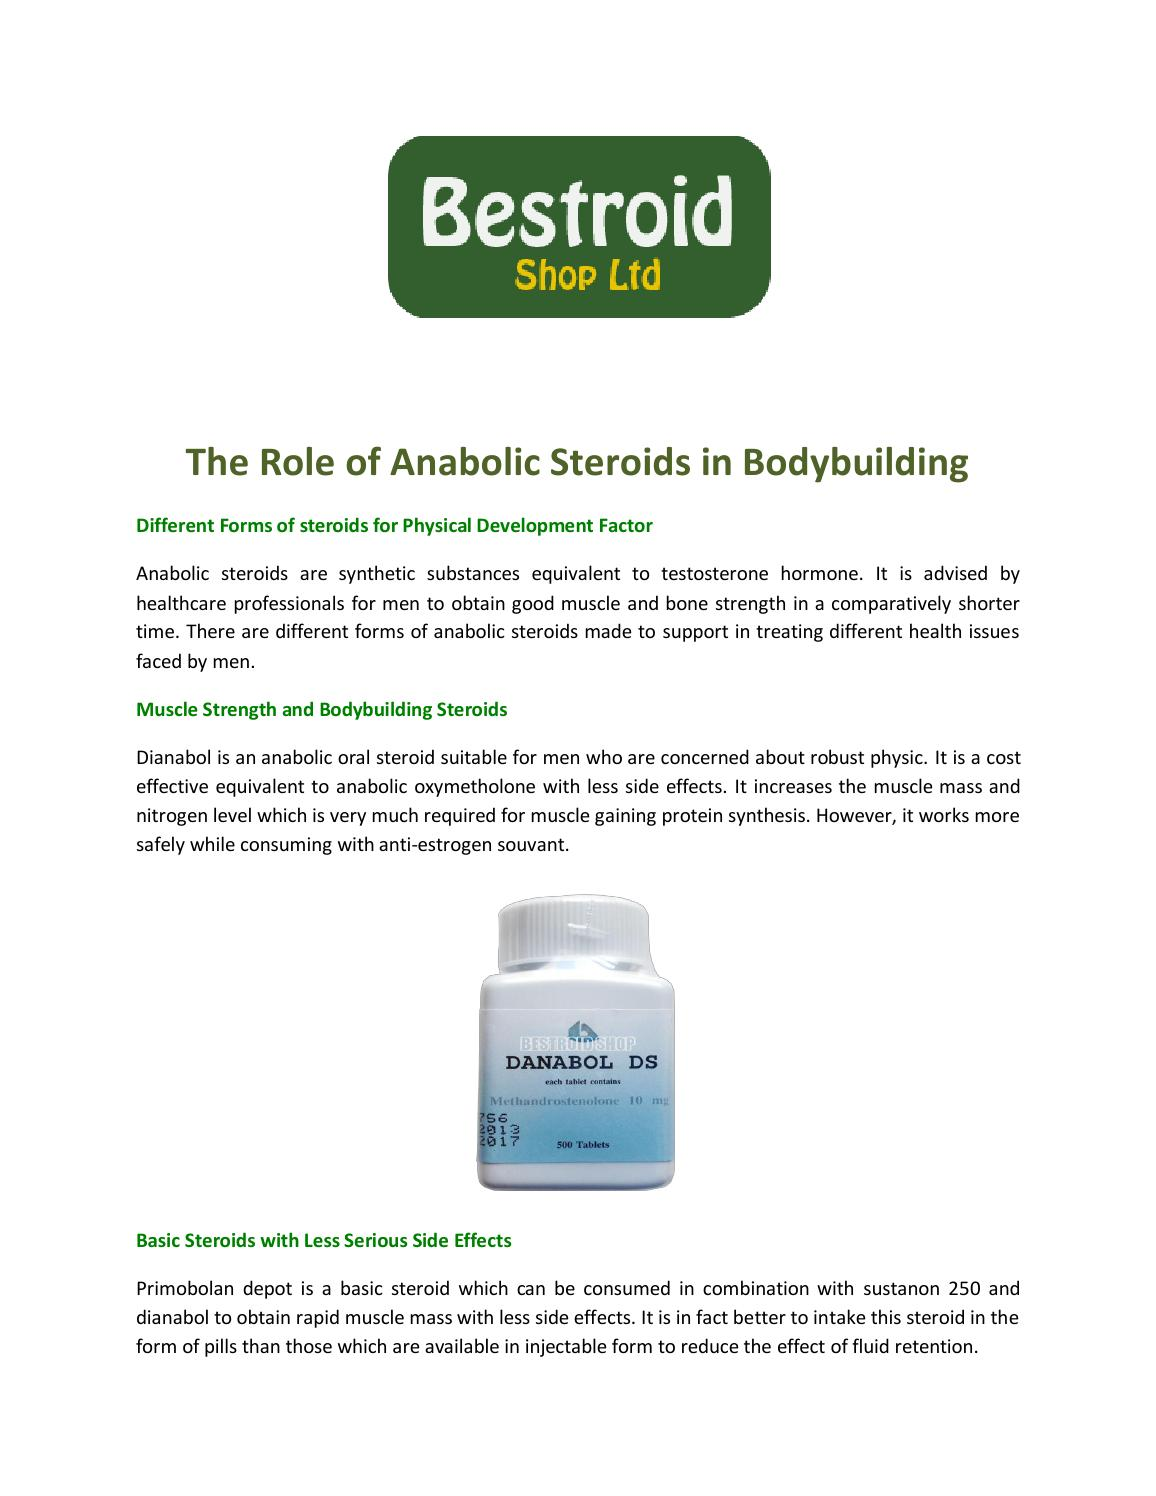 what is the most powerful form of anabolic steroid